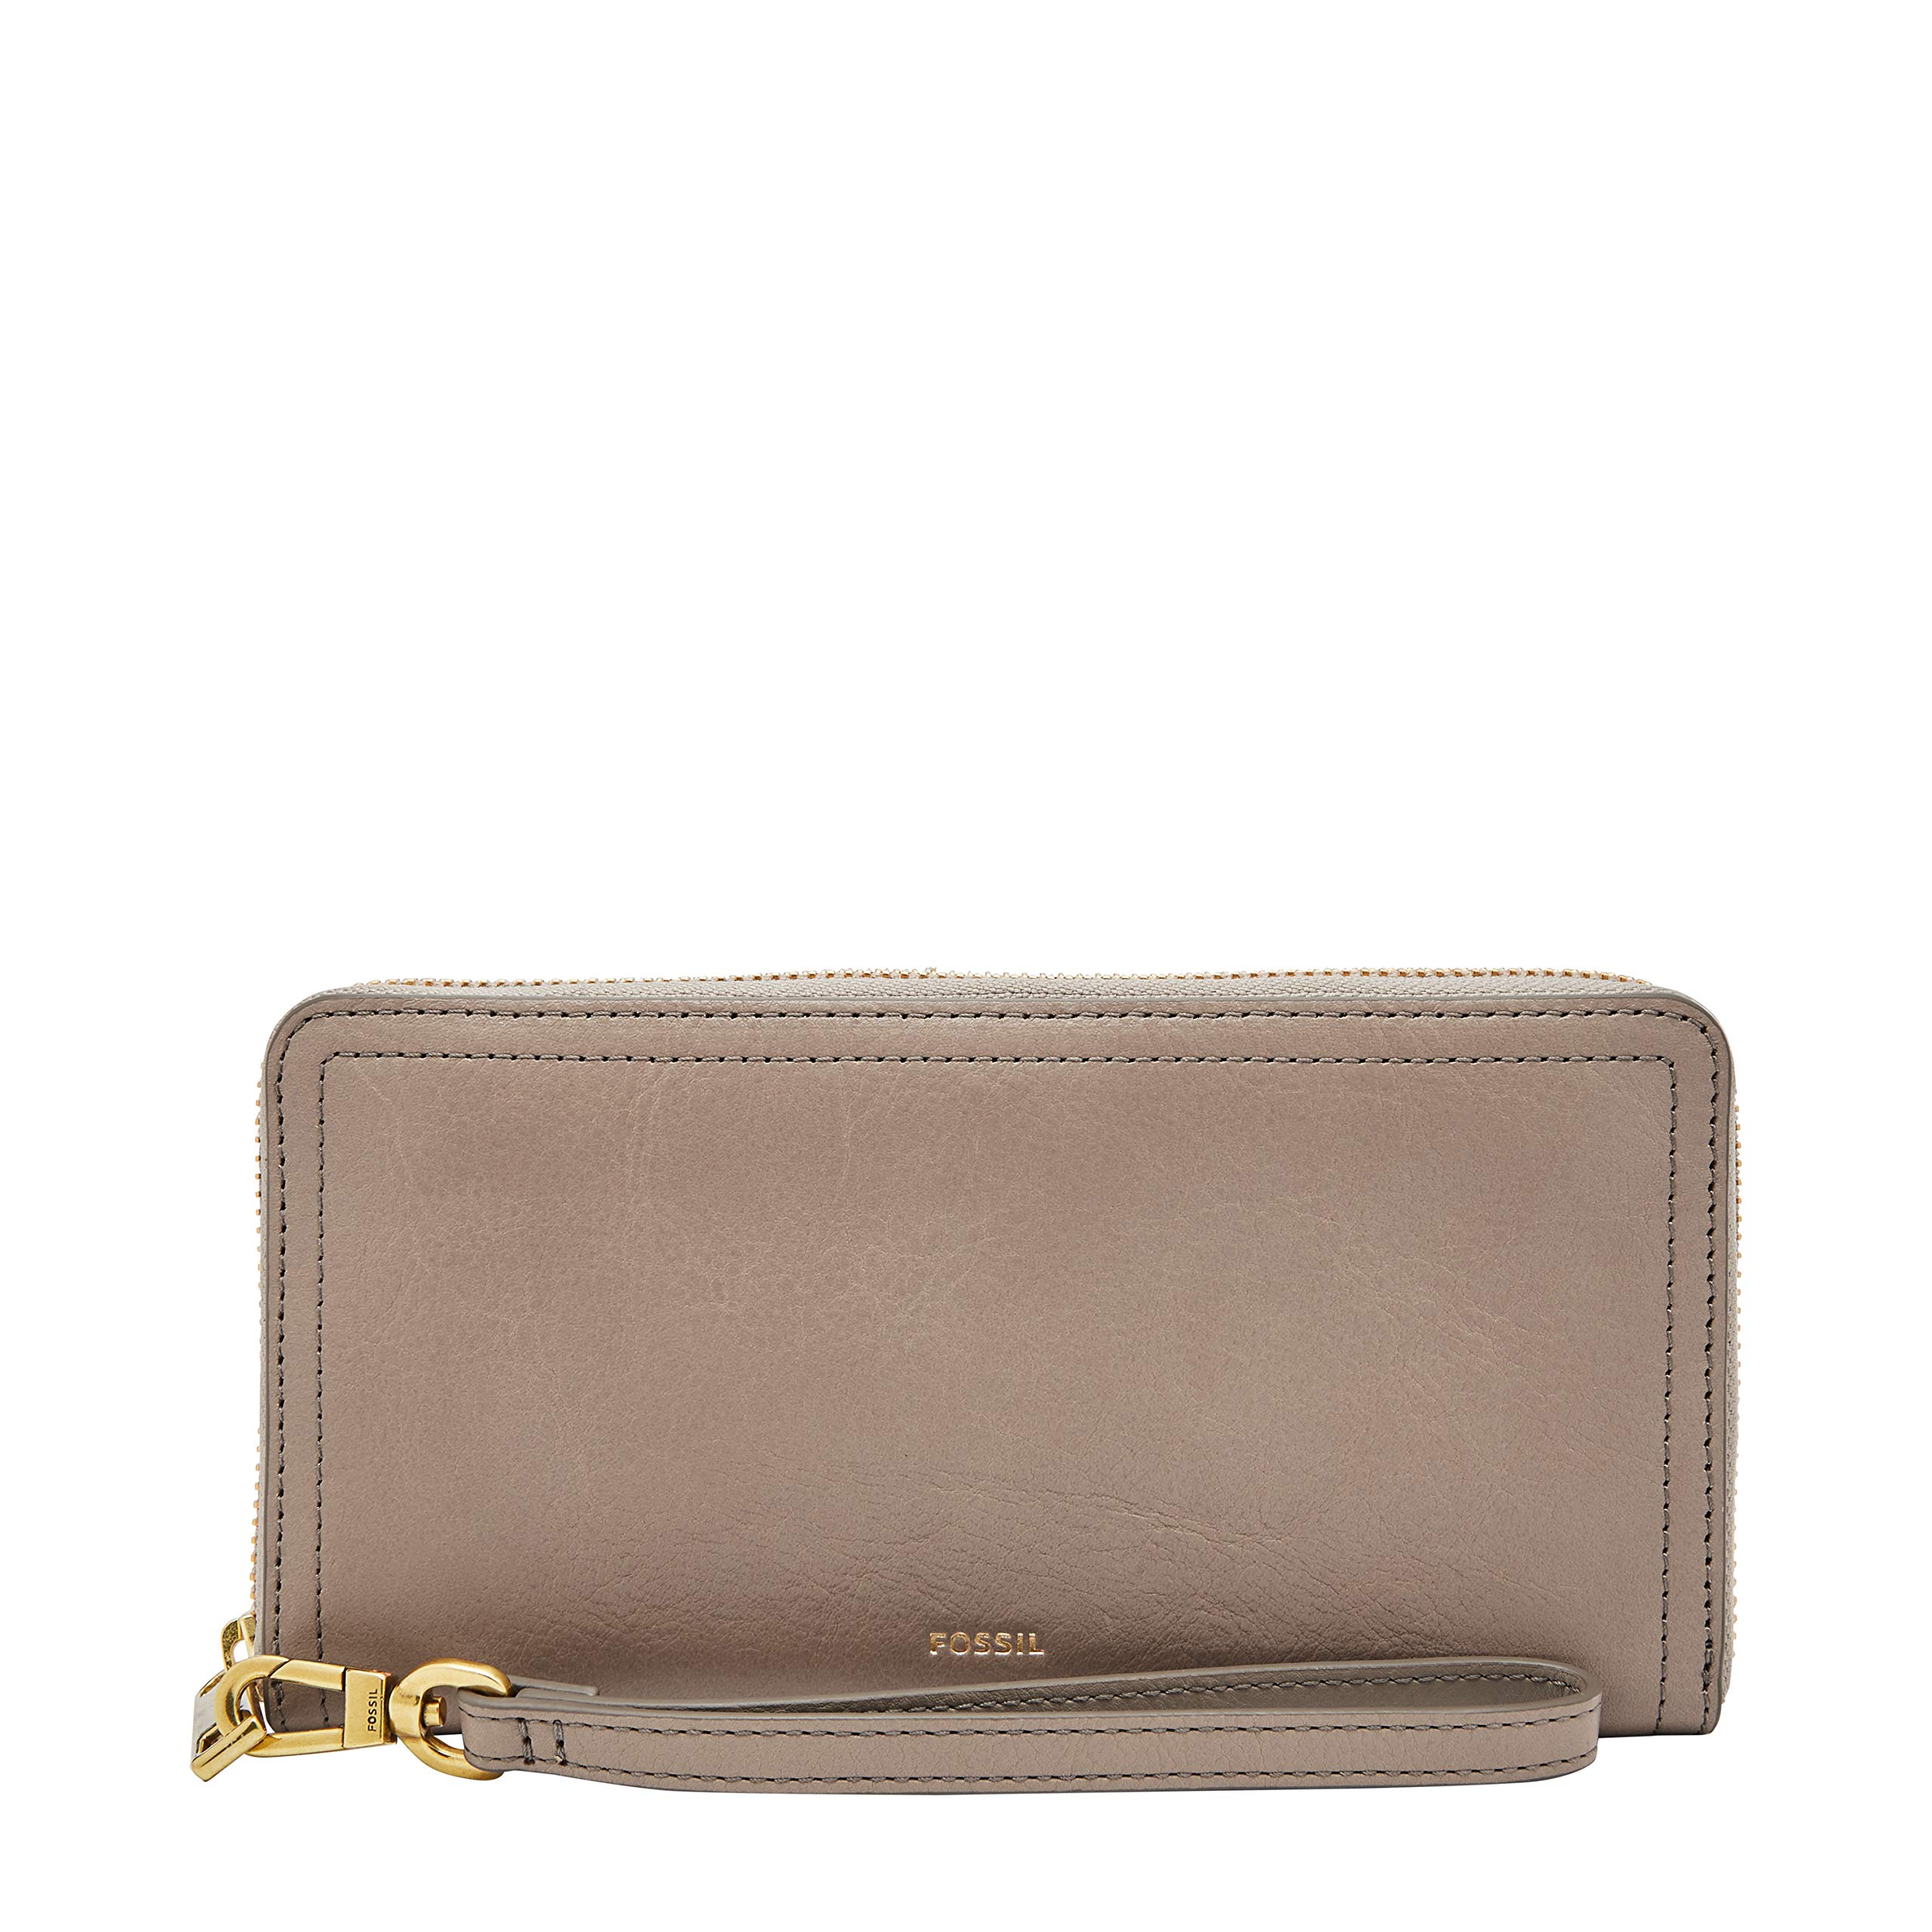 Fossil Logan RFID Zip Around Clutch Light Taupe